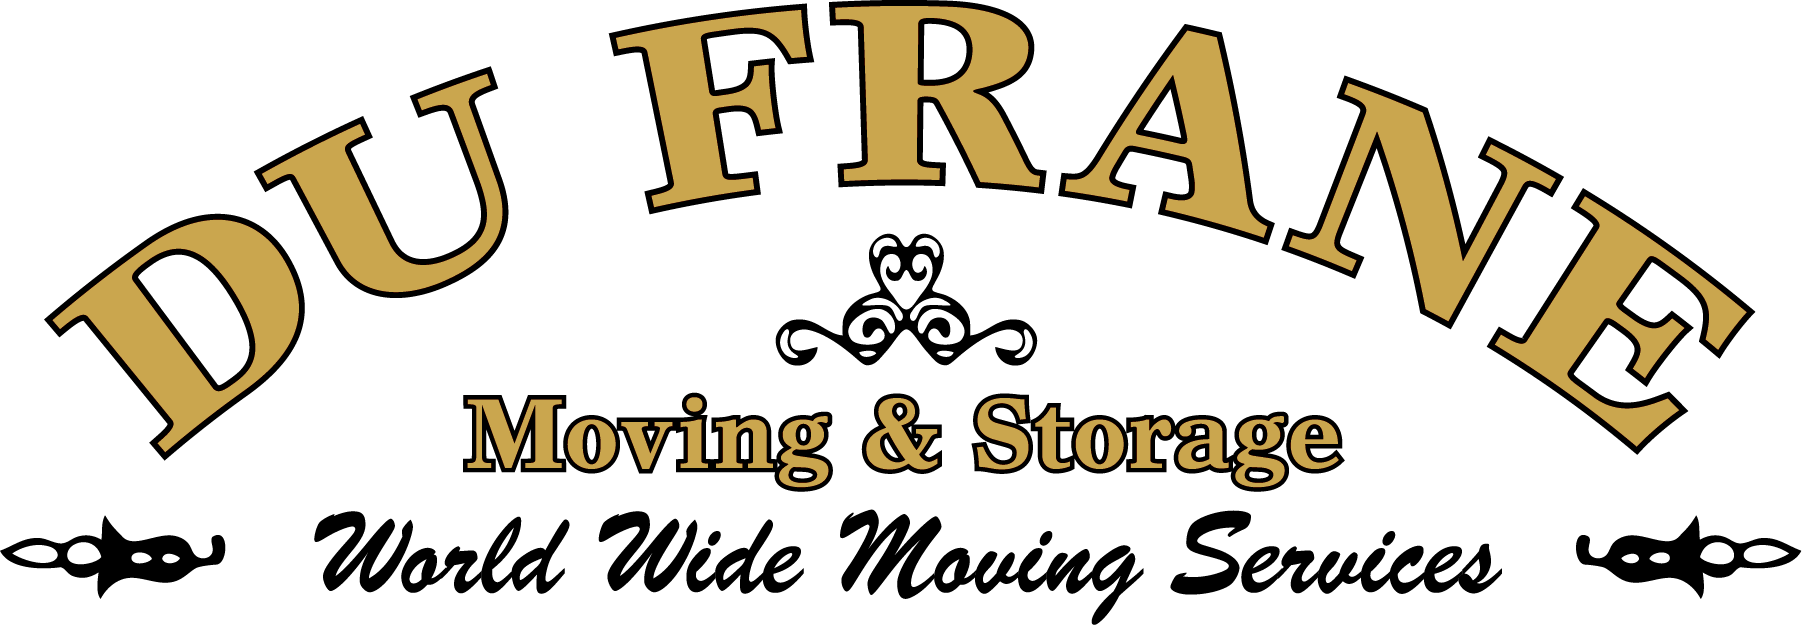 DuFrane Moving & Storage